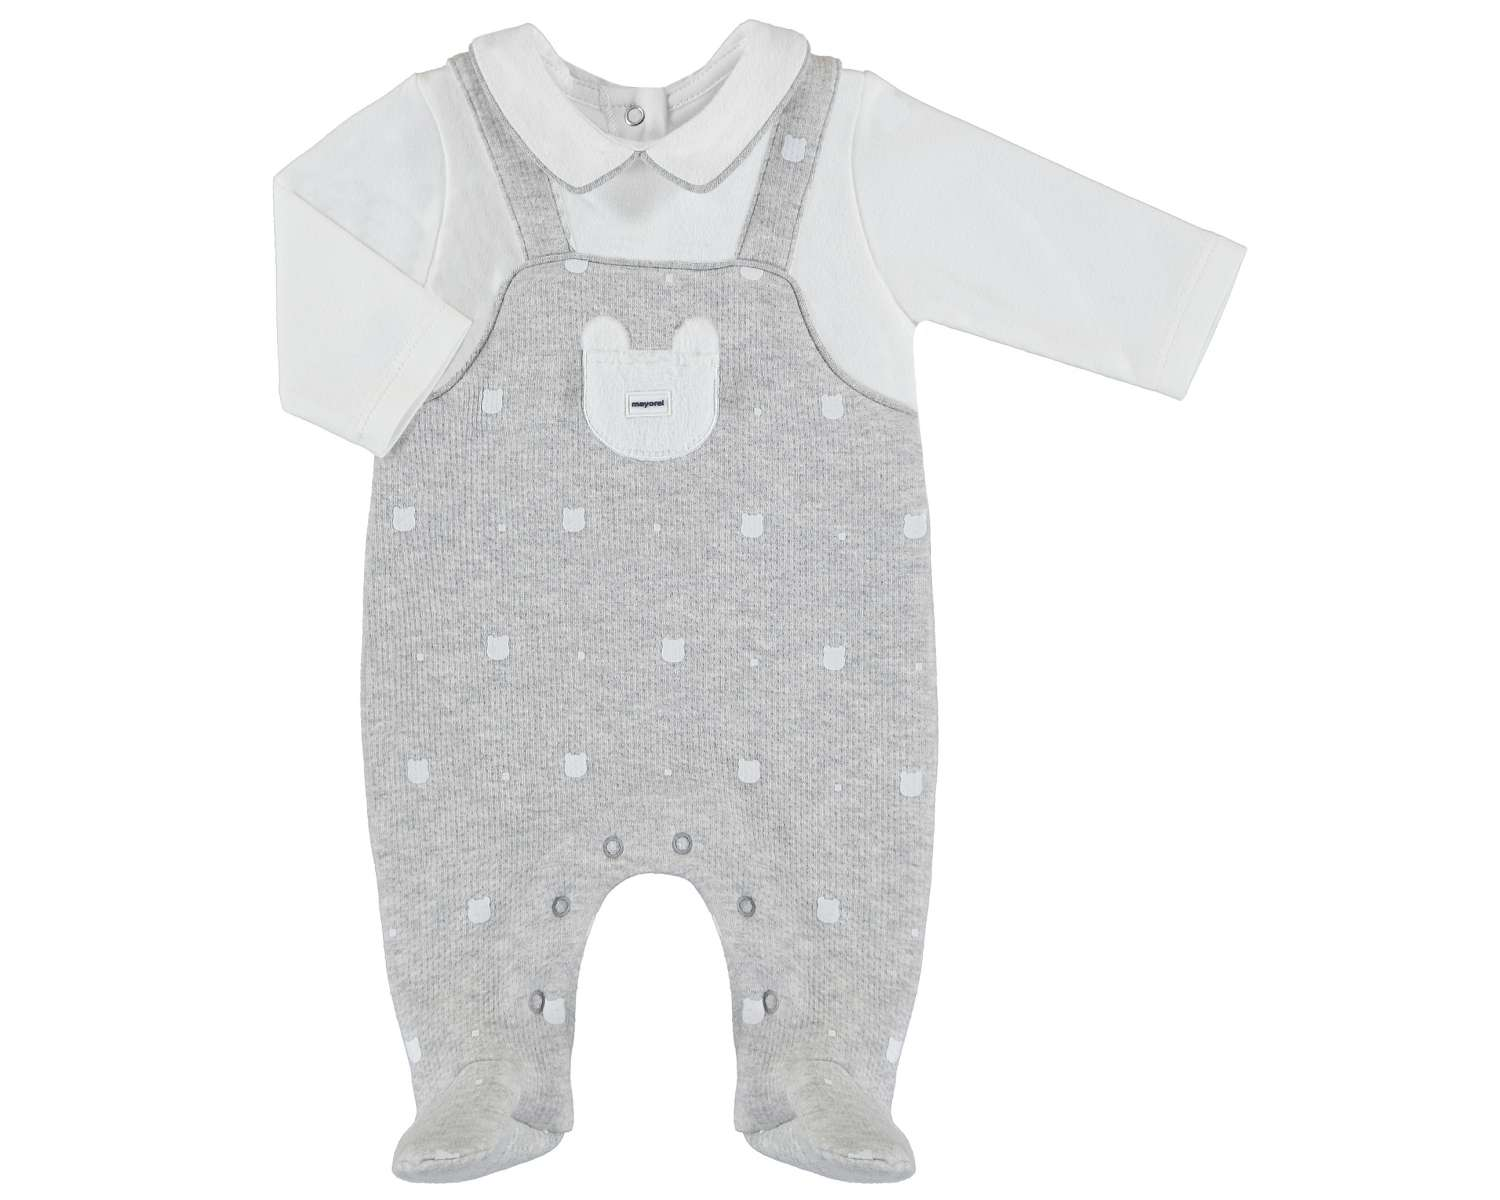 79c7b2bdd3fa3 MAYORAL Newborn Baby Suit (2-4 months) - My Special Gift for YOU